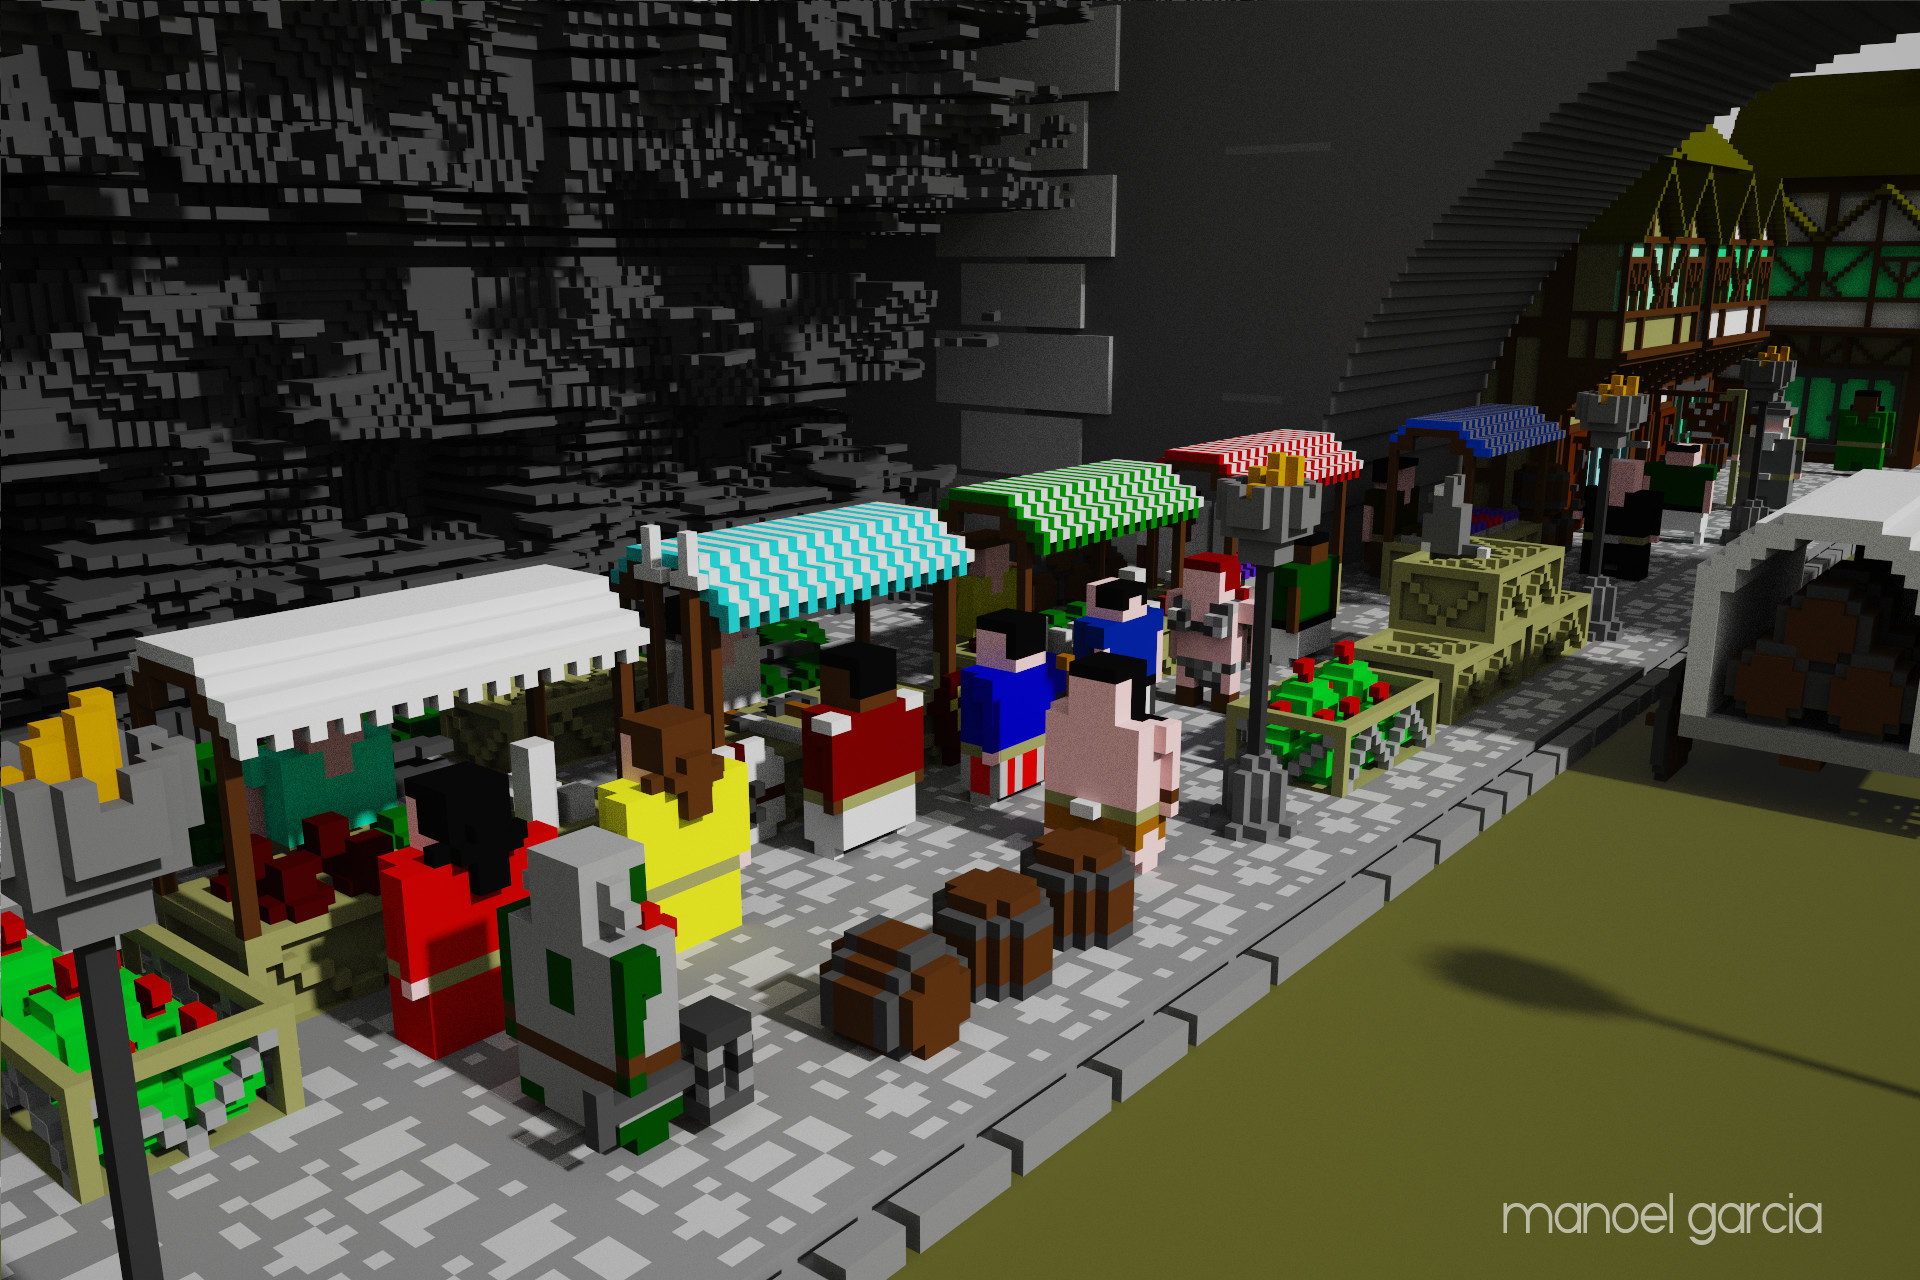 Market view with a lot of chars tributes from movies and games